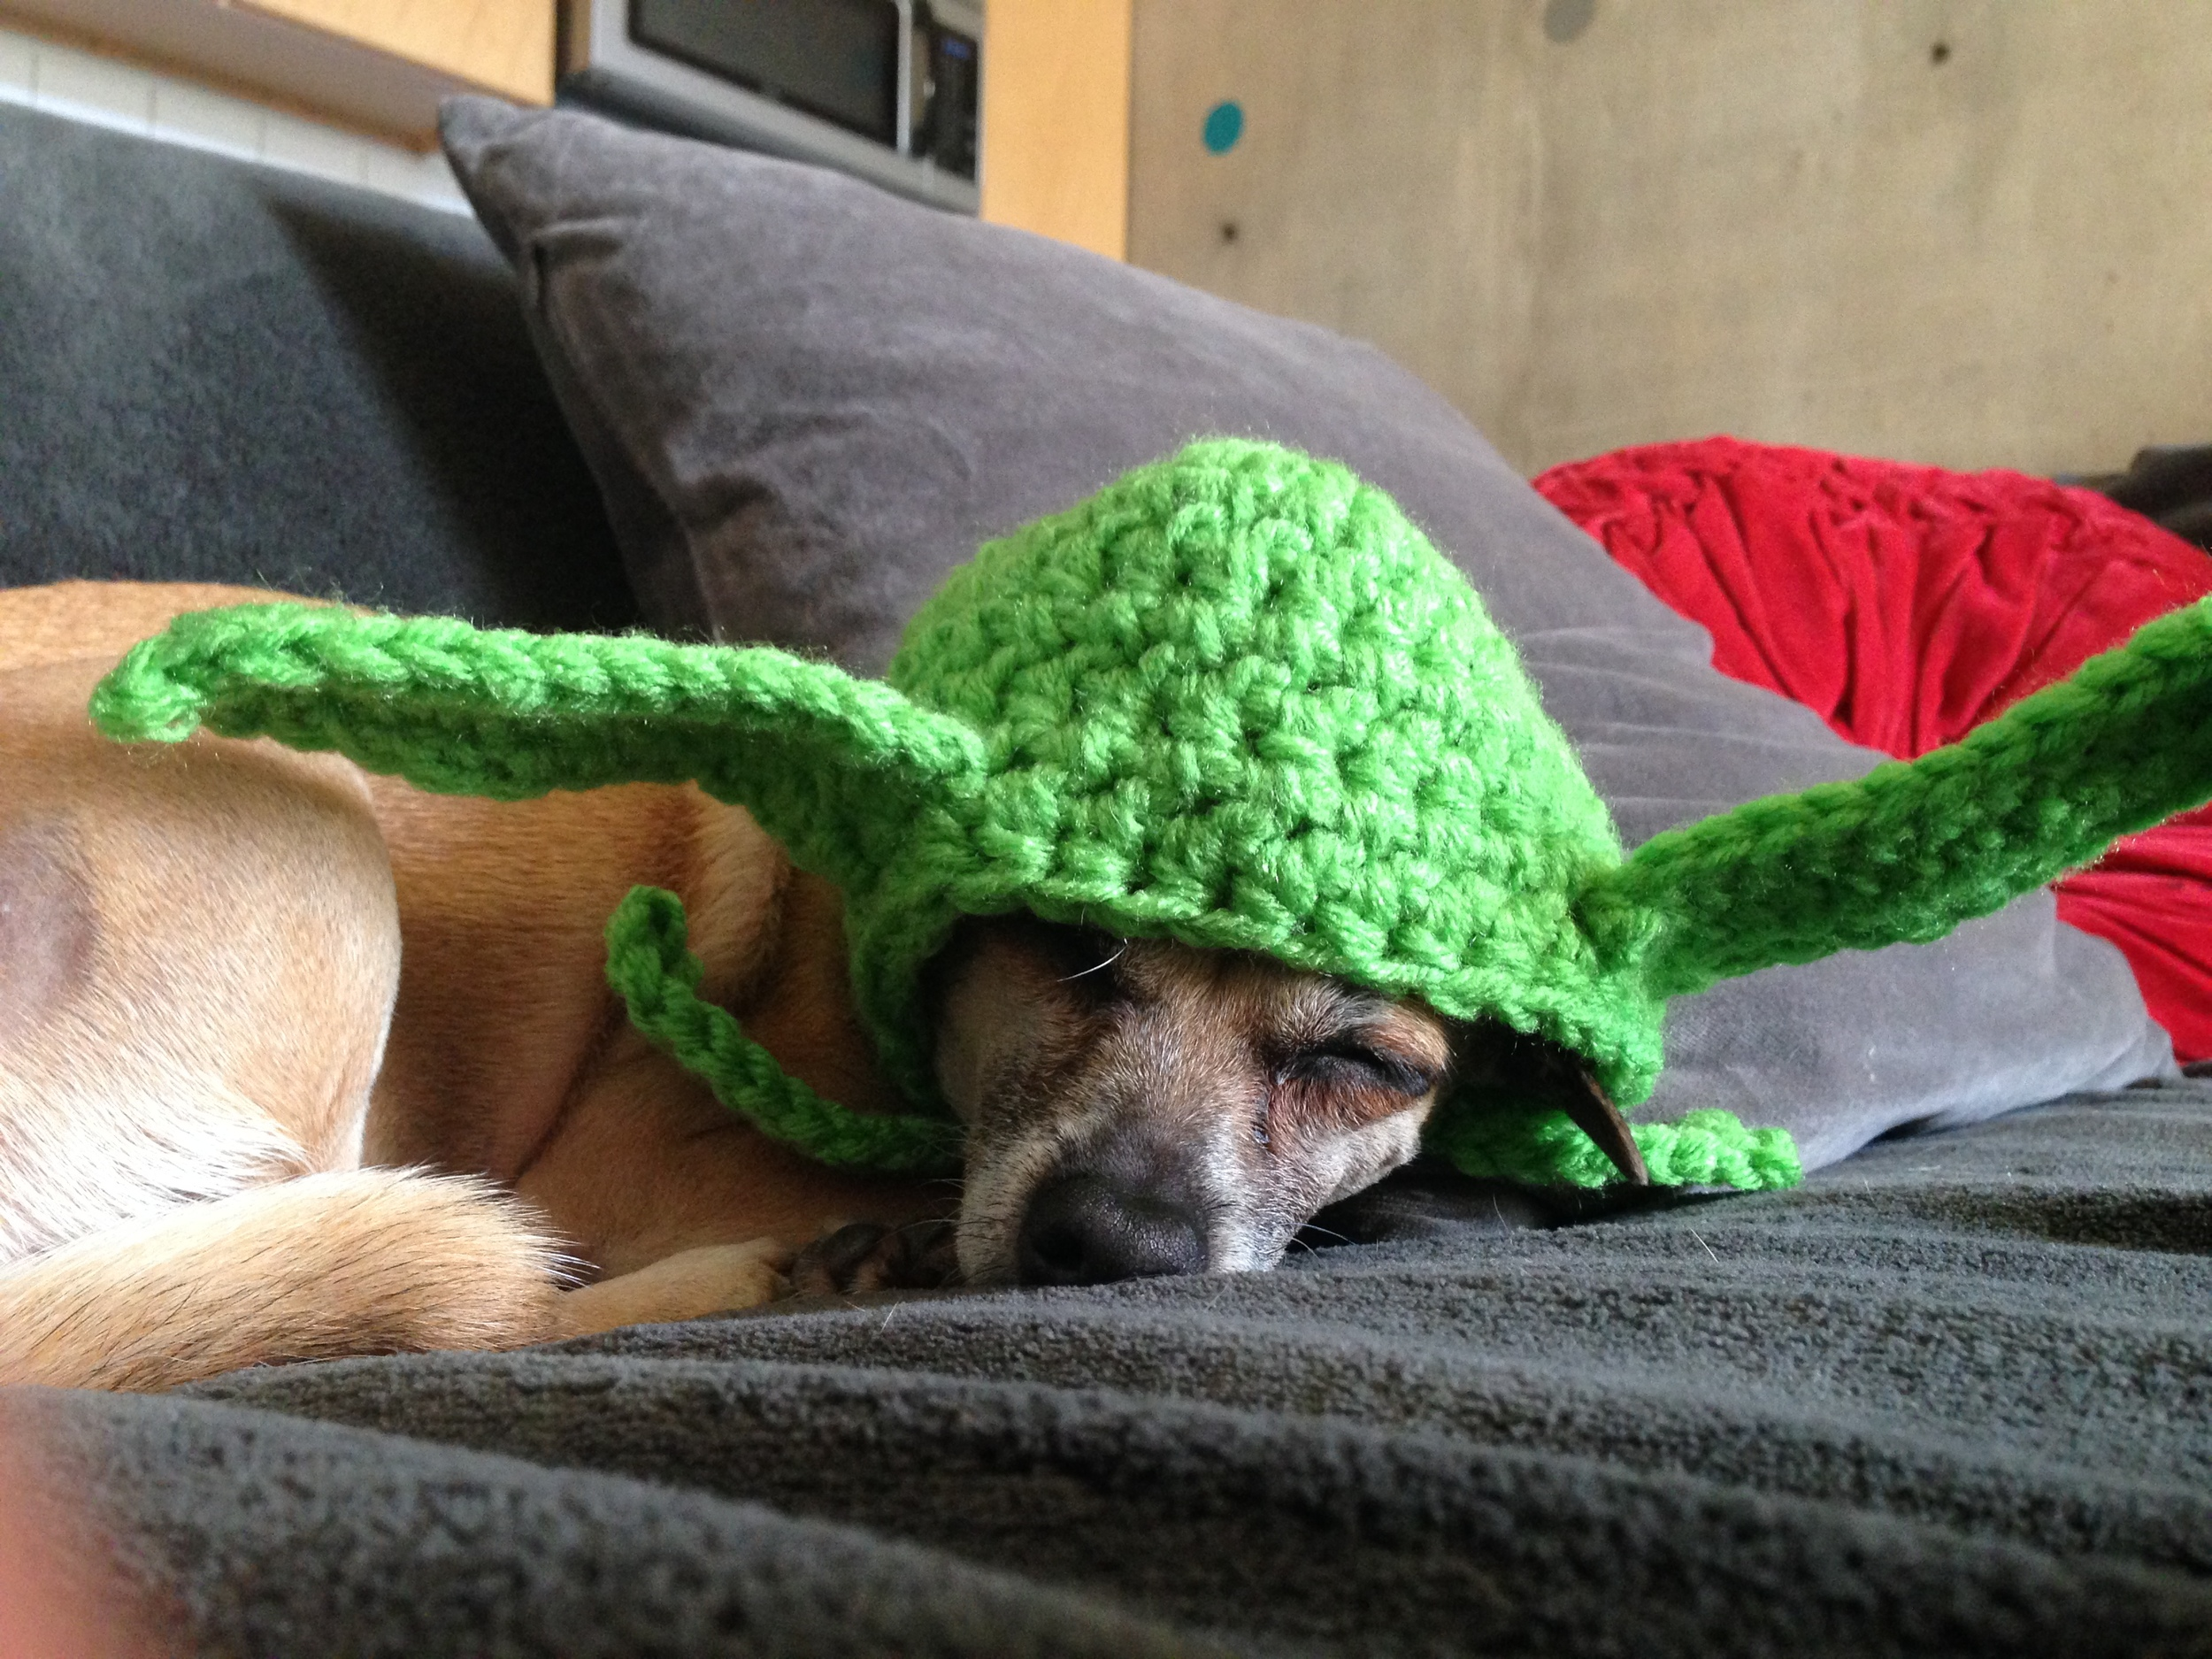 My dog is an excellent sleeper, for the record. Even while wearing knitted yoda ears.